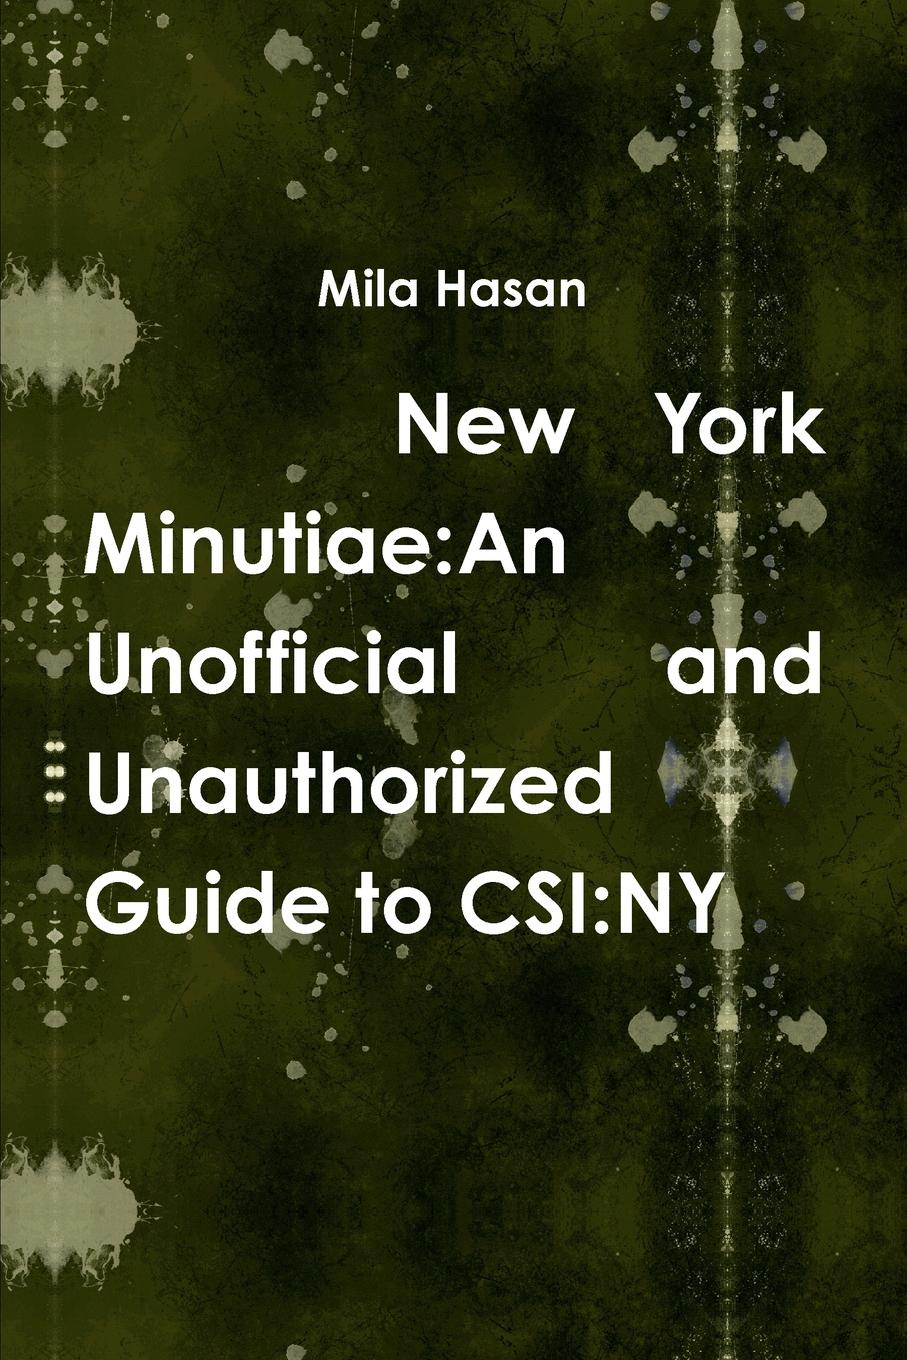 Mila Hasan New York Minutiae. An Unofficial and Unauthorized Guide to CSI:NY original new dvp04pt s plc module tested well working three months warranty